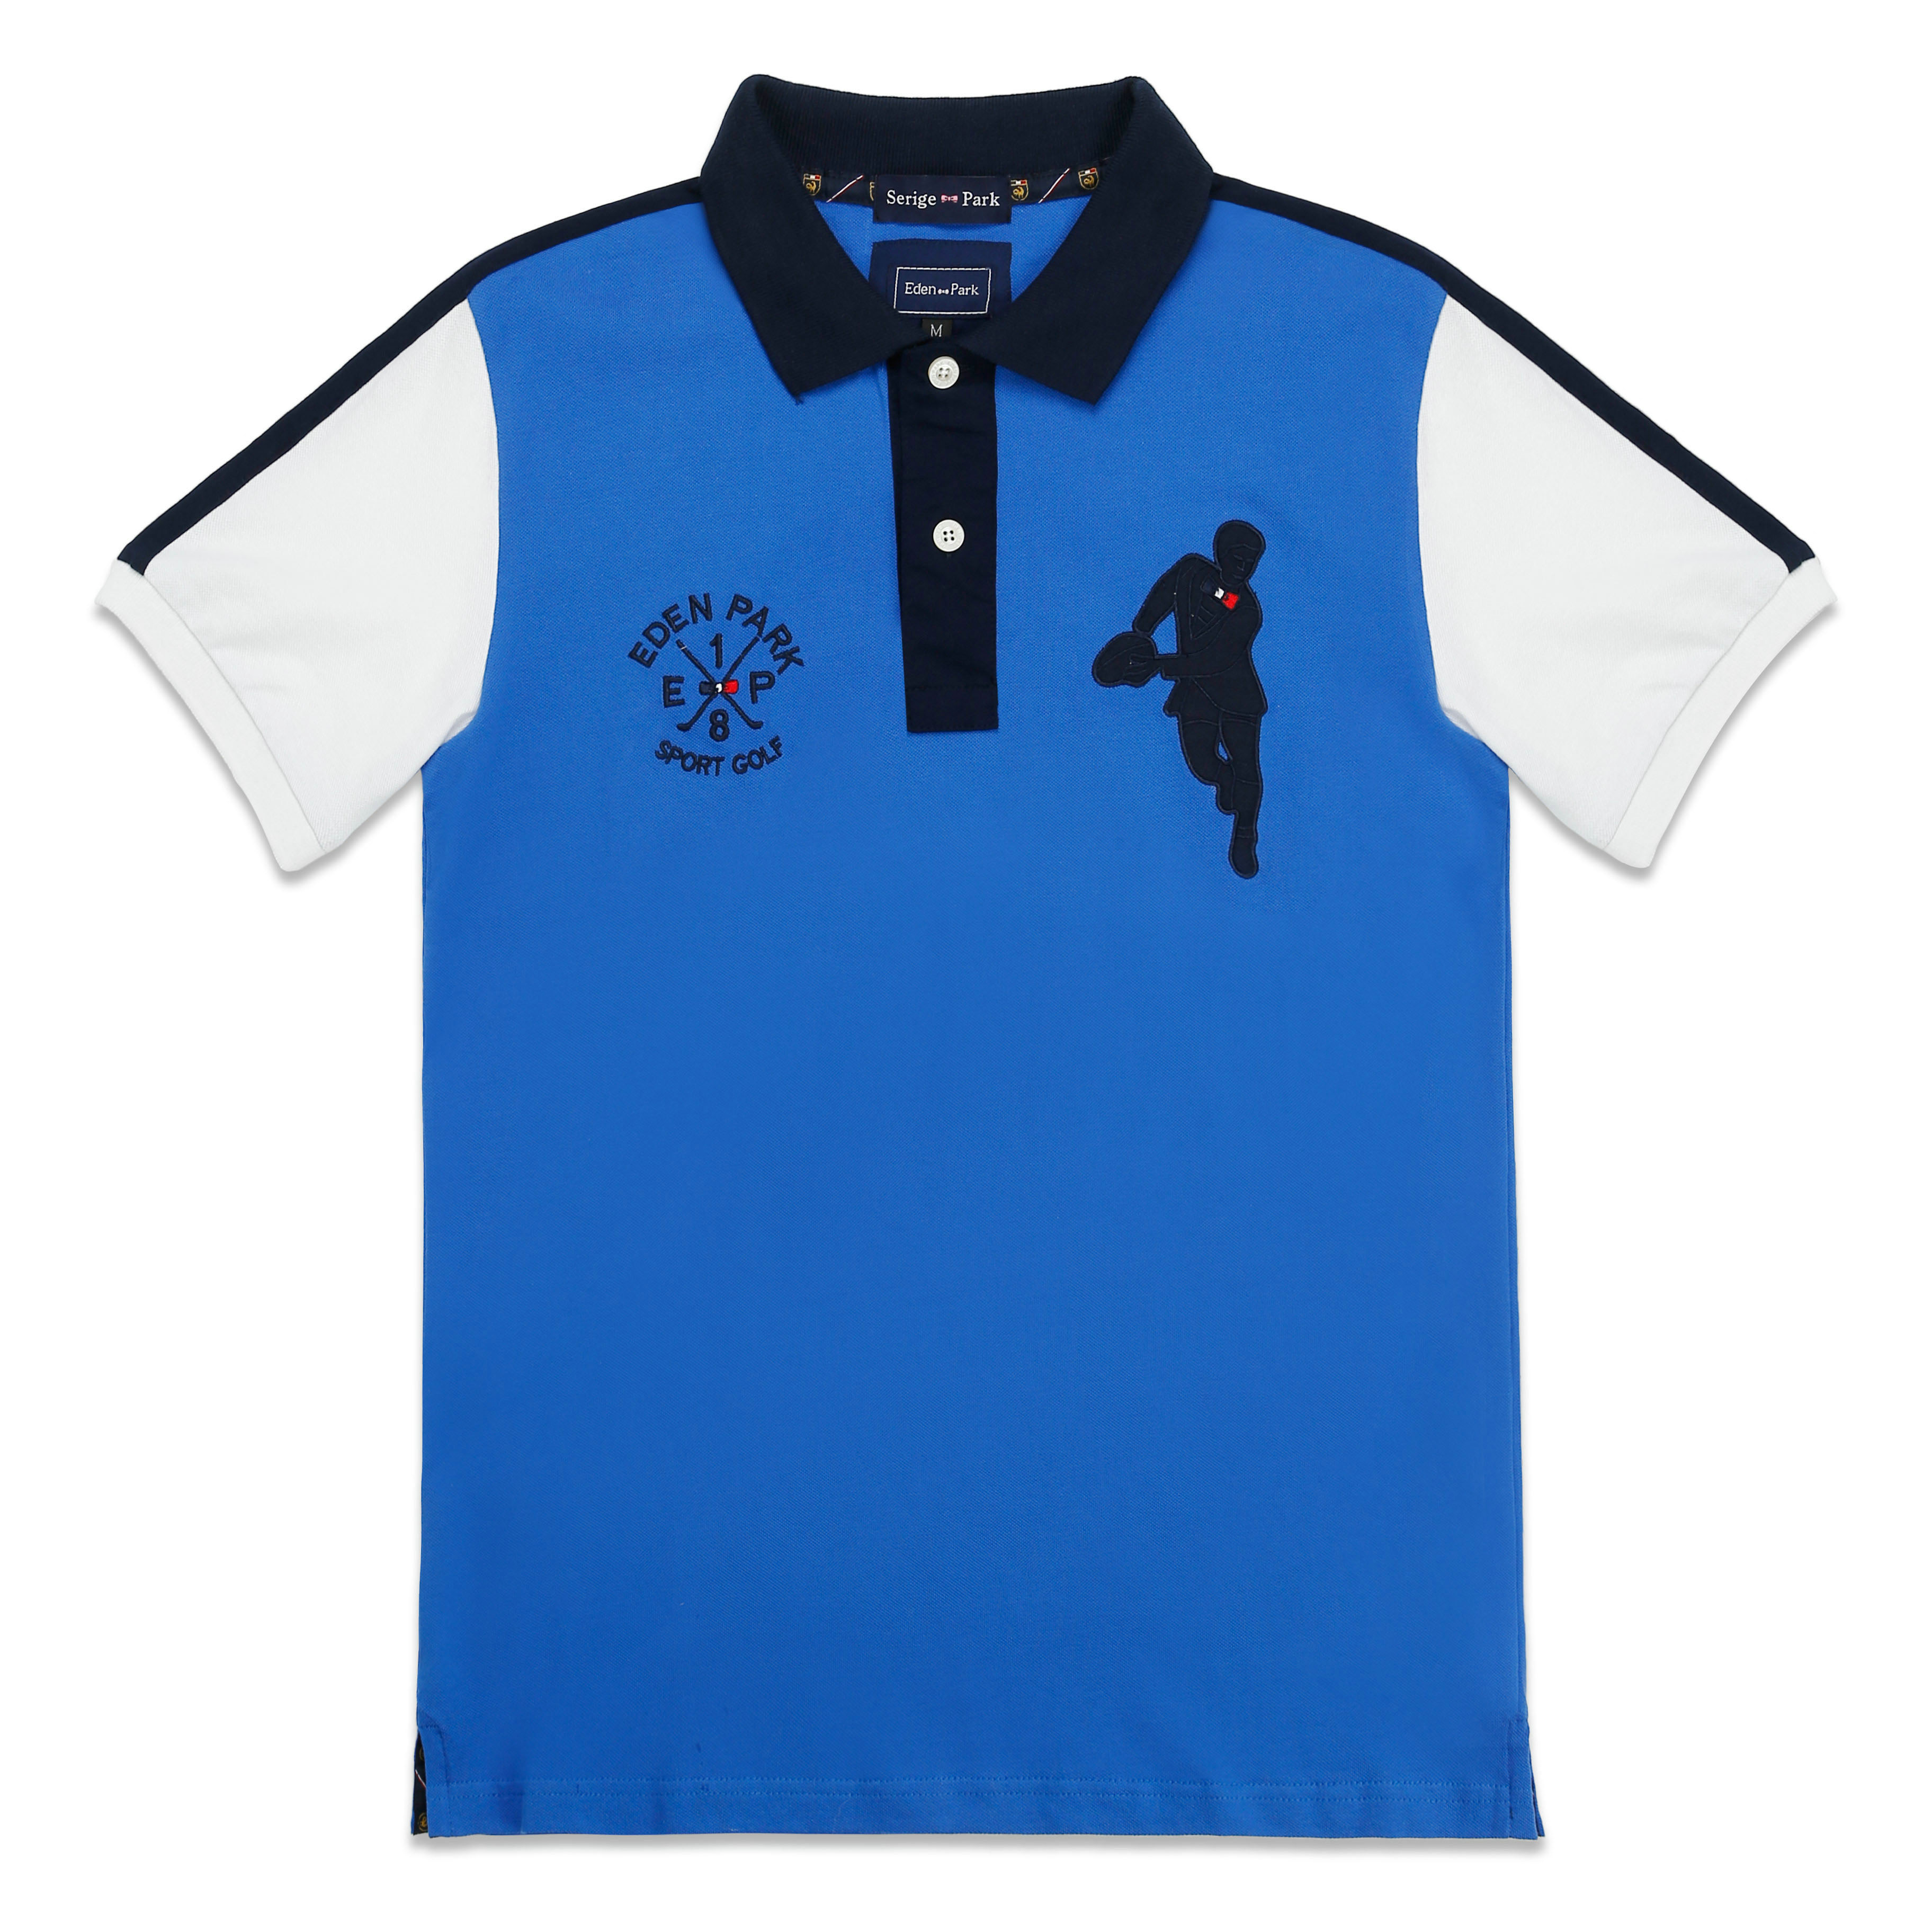 2019 NEW MEN   POLO   SHIRTSUMMER HIGH QUALITY BRAND SERIGE EDEN PARK FRANCE BRAND SUPERIOR COTTON MATERIAL AND EXCELLENT EMBROIDERY